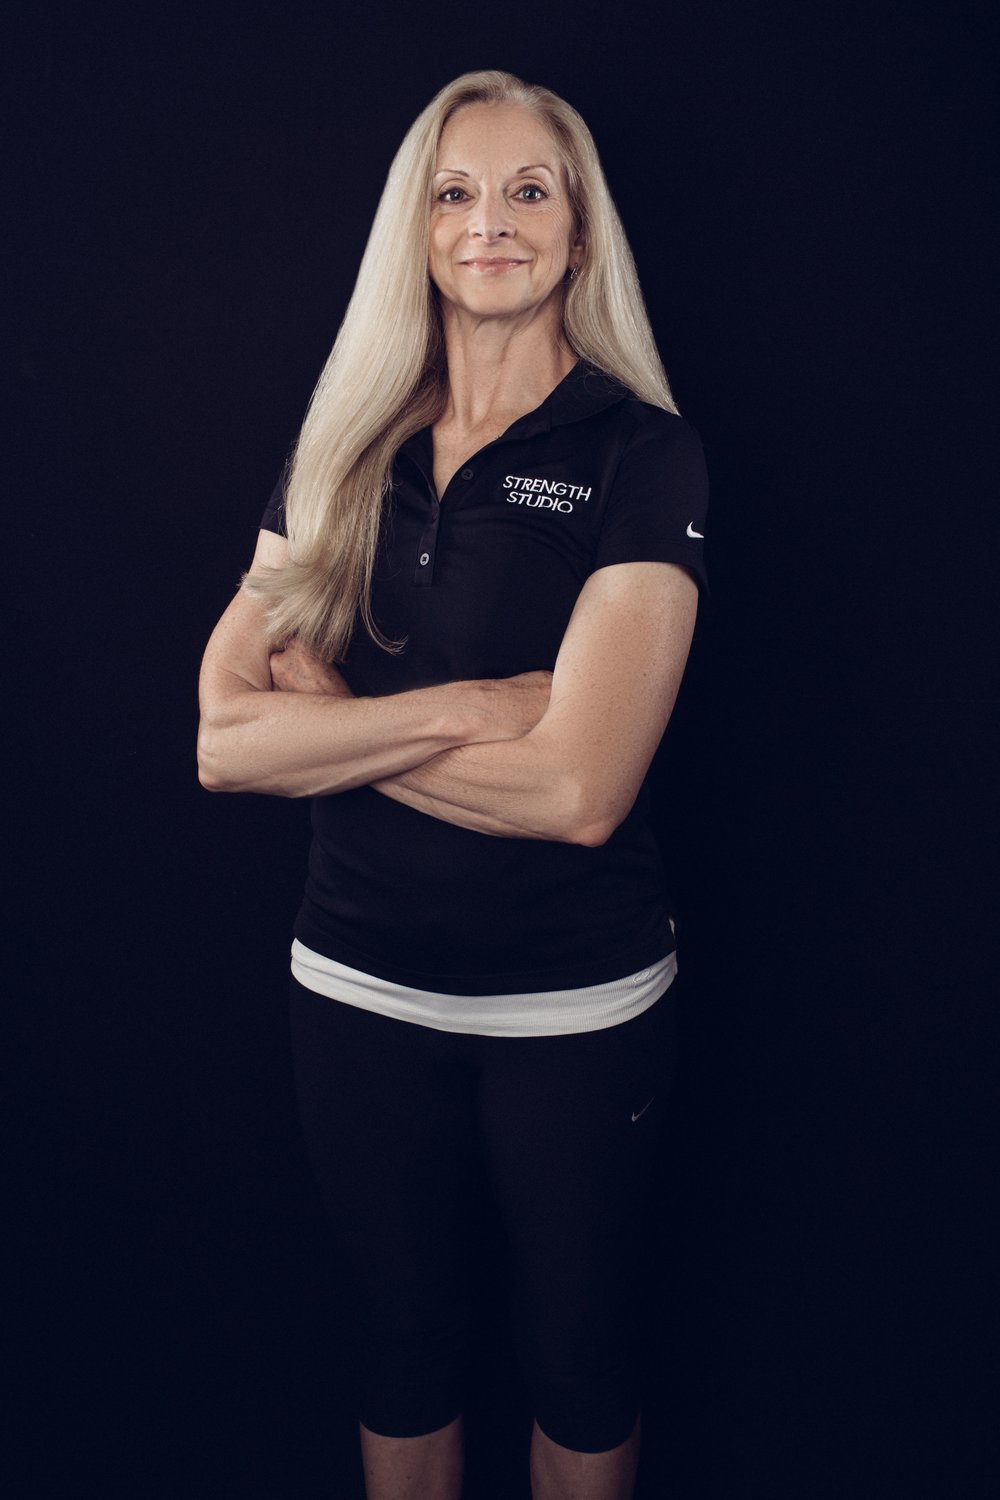 Gwen Robbins Personal Trainer Functional Range Conditioning, FRC certified Poliquin Biosignature Modulation, Level 1 Certified Personal Trainer, CIAR Holistic Lifestyle Coach Level 1, Chek Institute Competitive Endurance Athlete